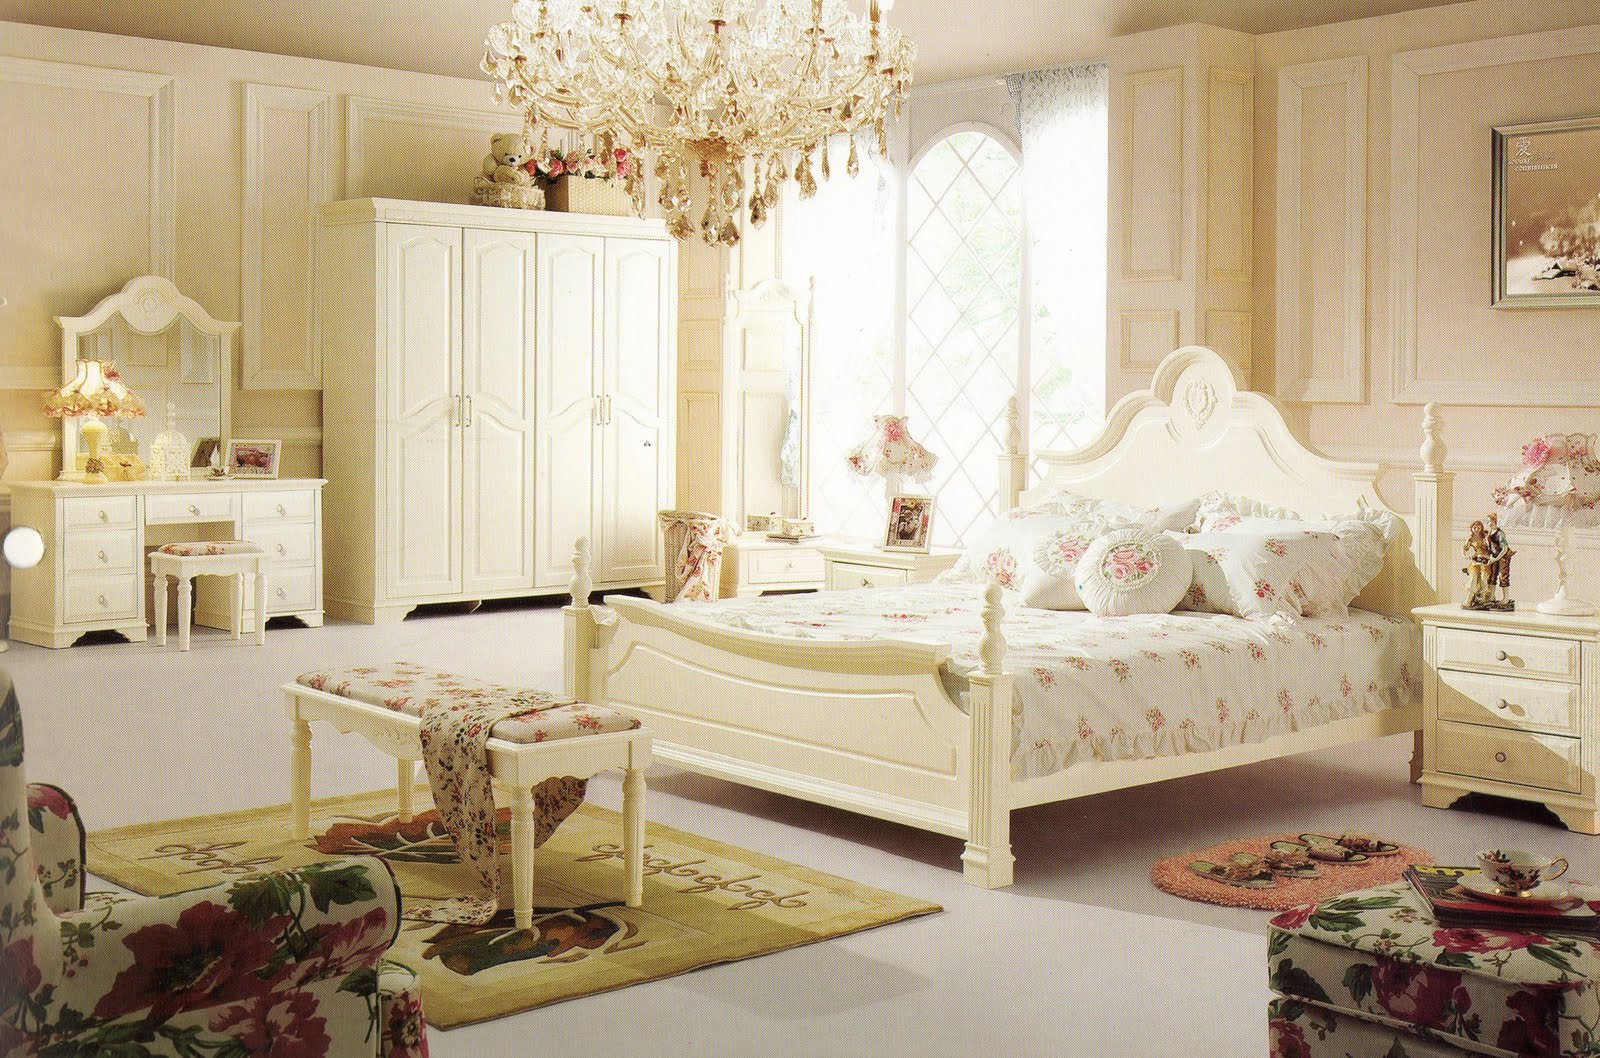 Bedroom French. Luxury French Bedroom Furniture The French Bedroom